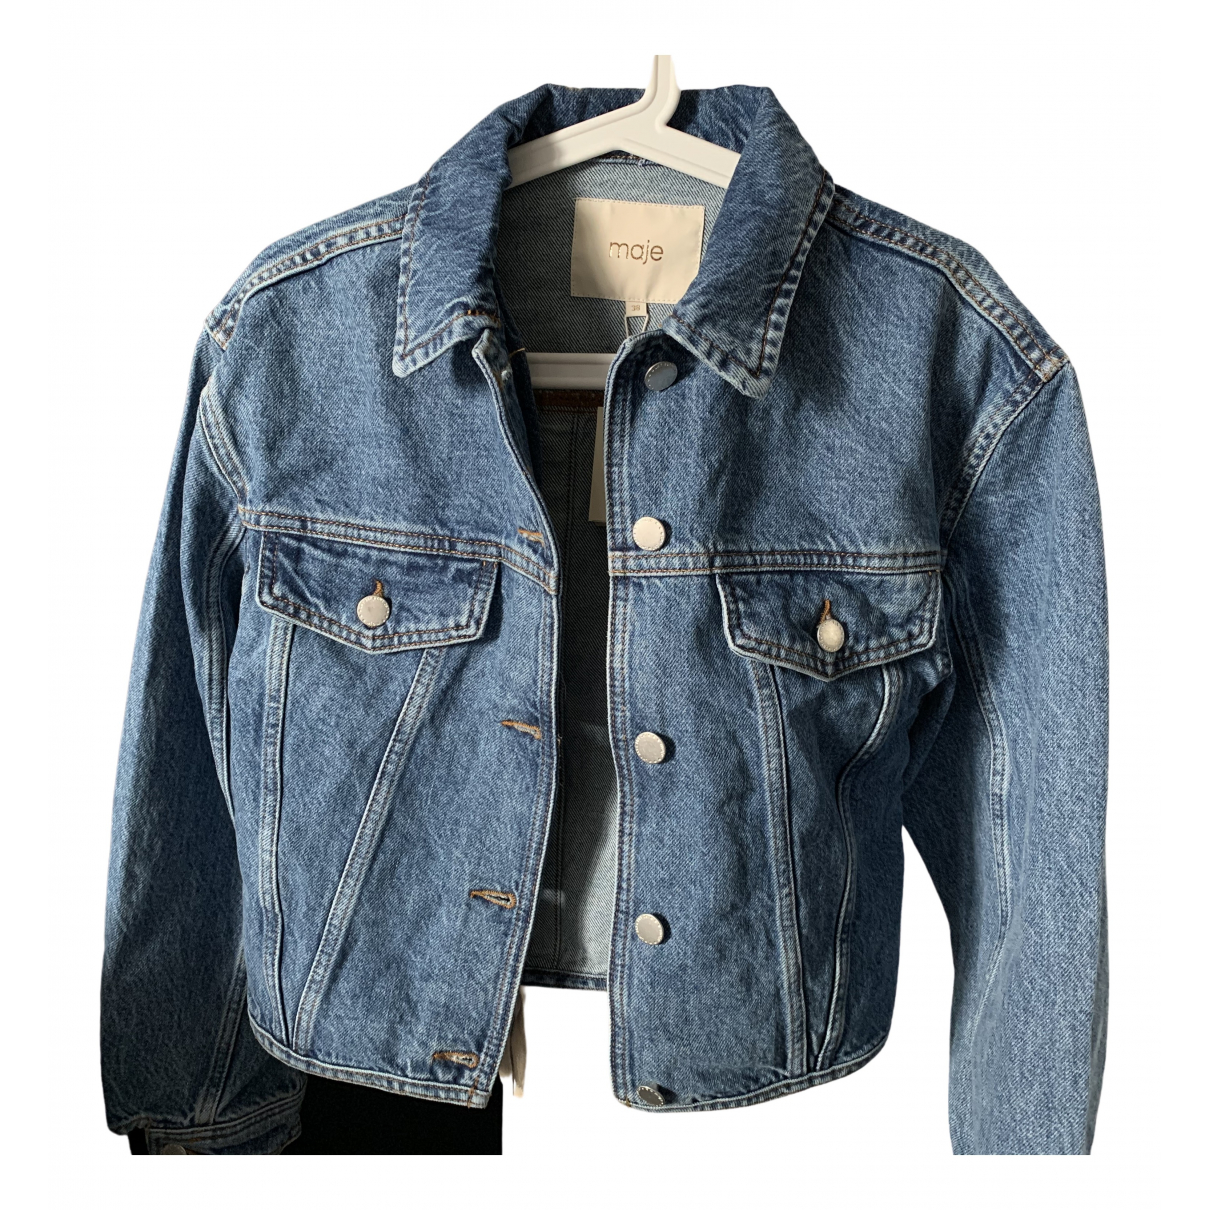 Maje Spring Summer 2020 Blue Denim - Jeans jacket for Women 38 FR